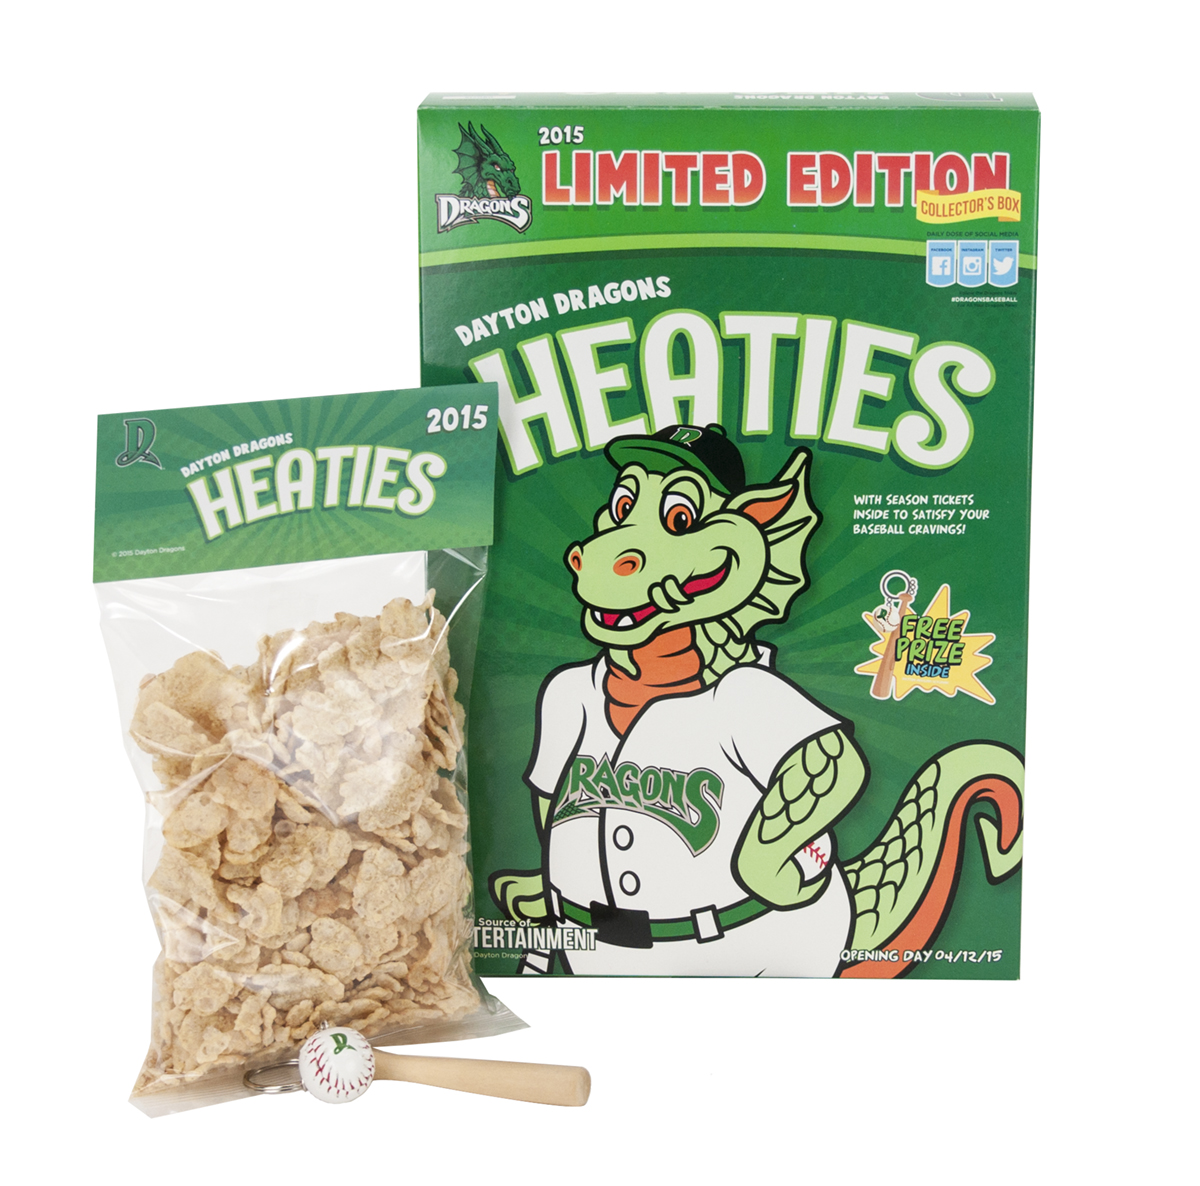 Dayton Dragons Heaties Campaign